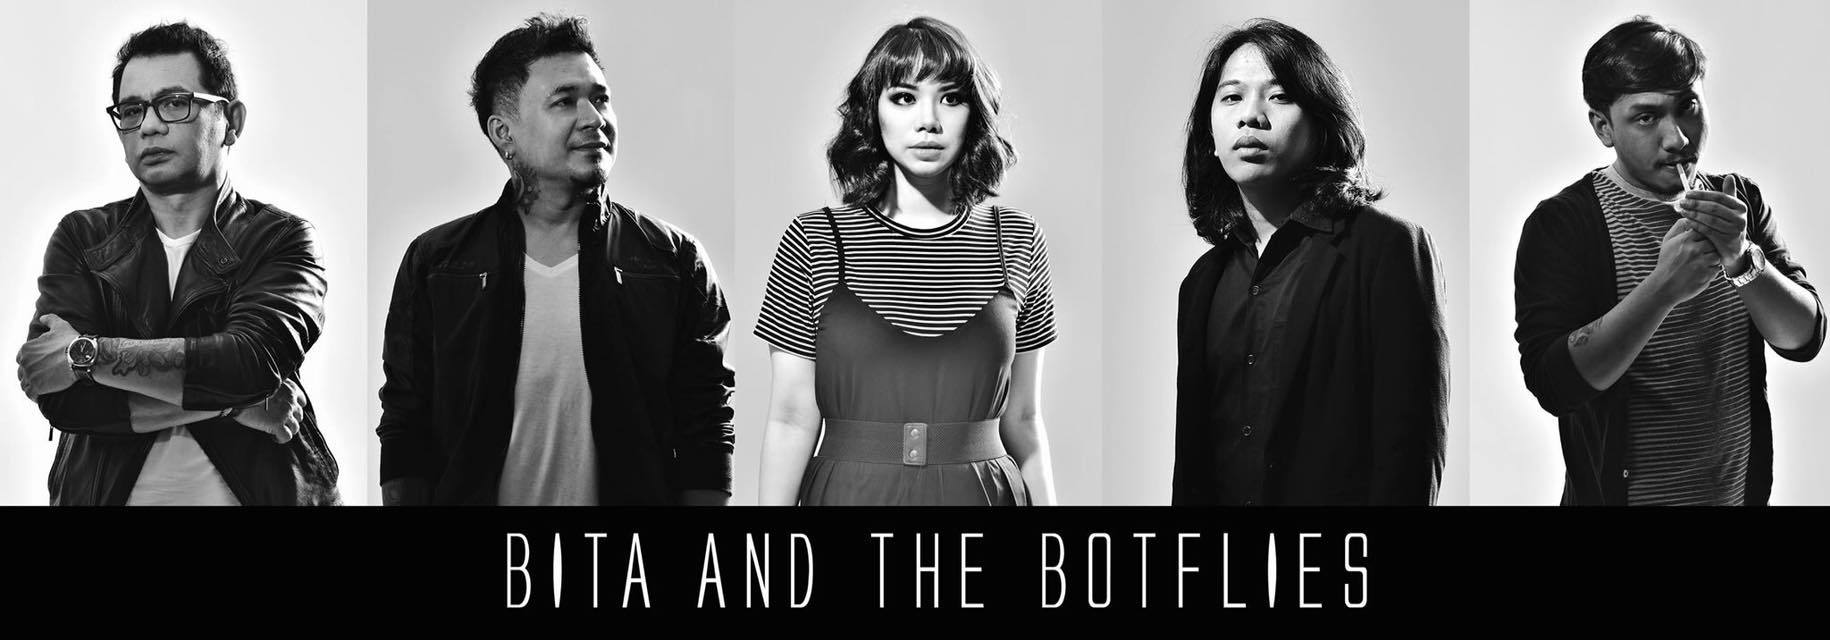 """Chop Chop Blues"" - A New Music Video By Bita And The Botflies"